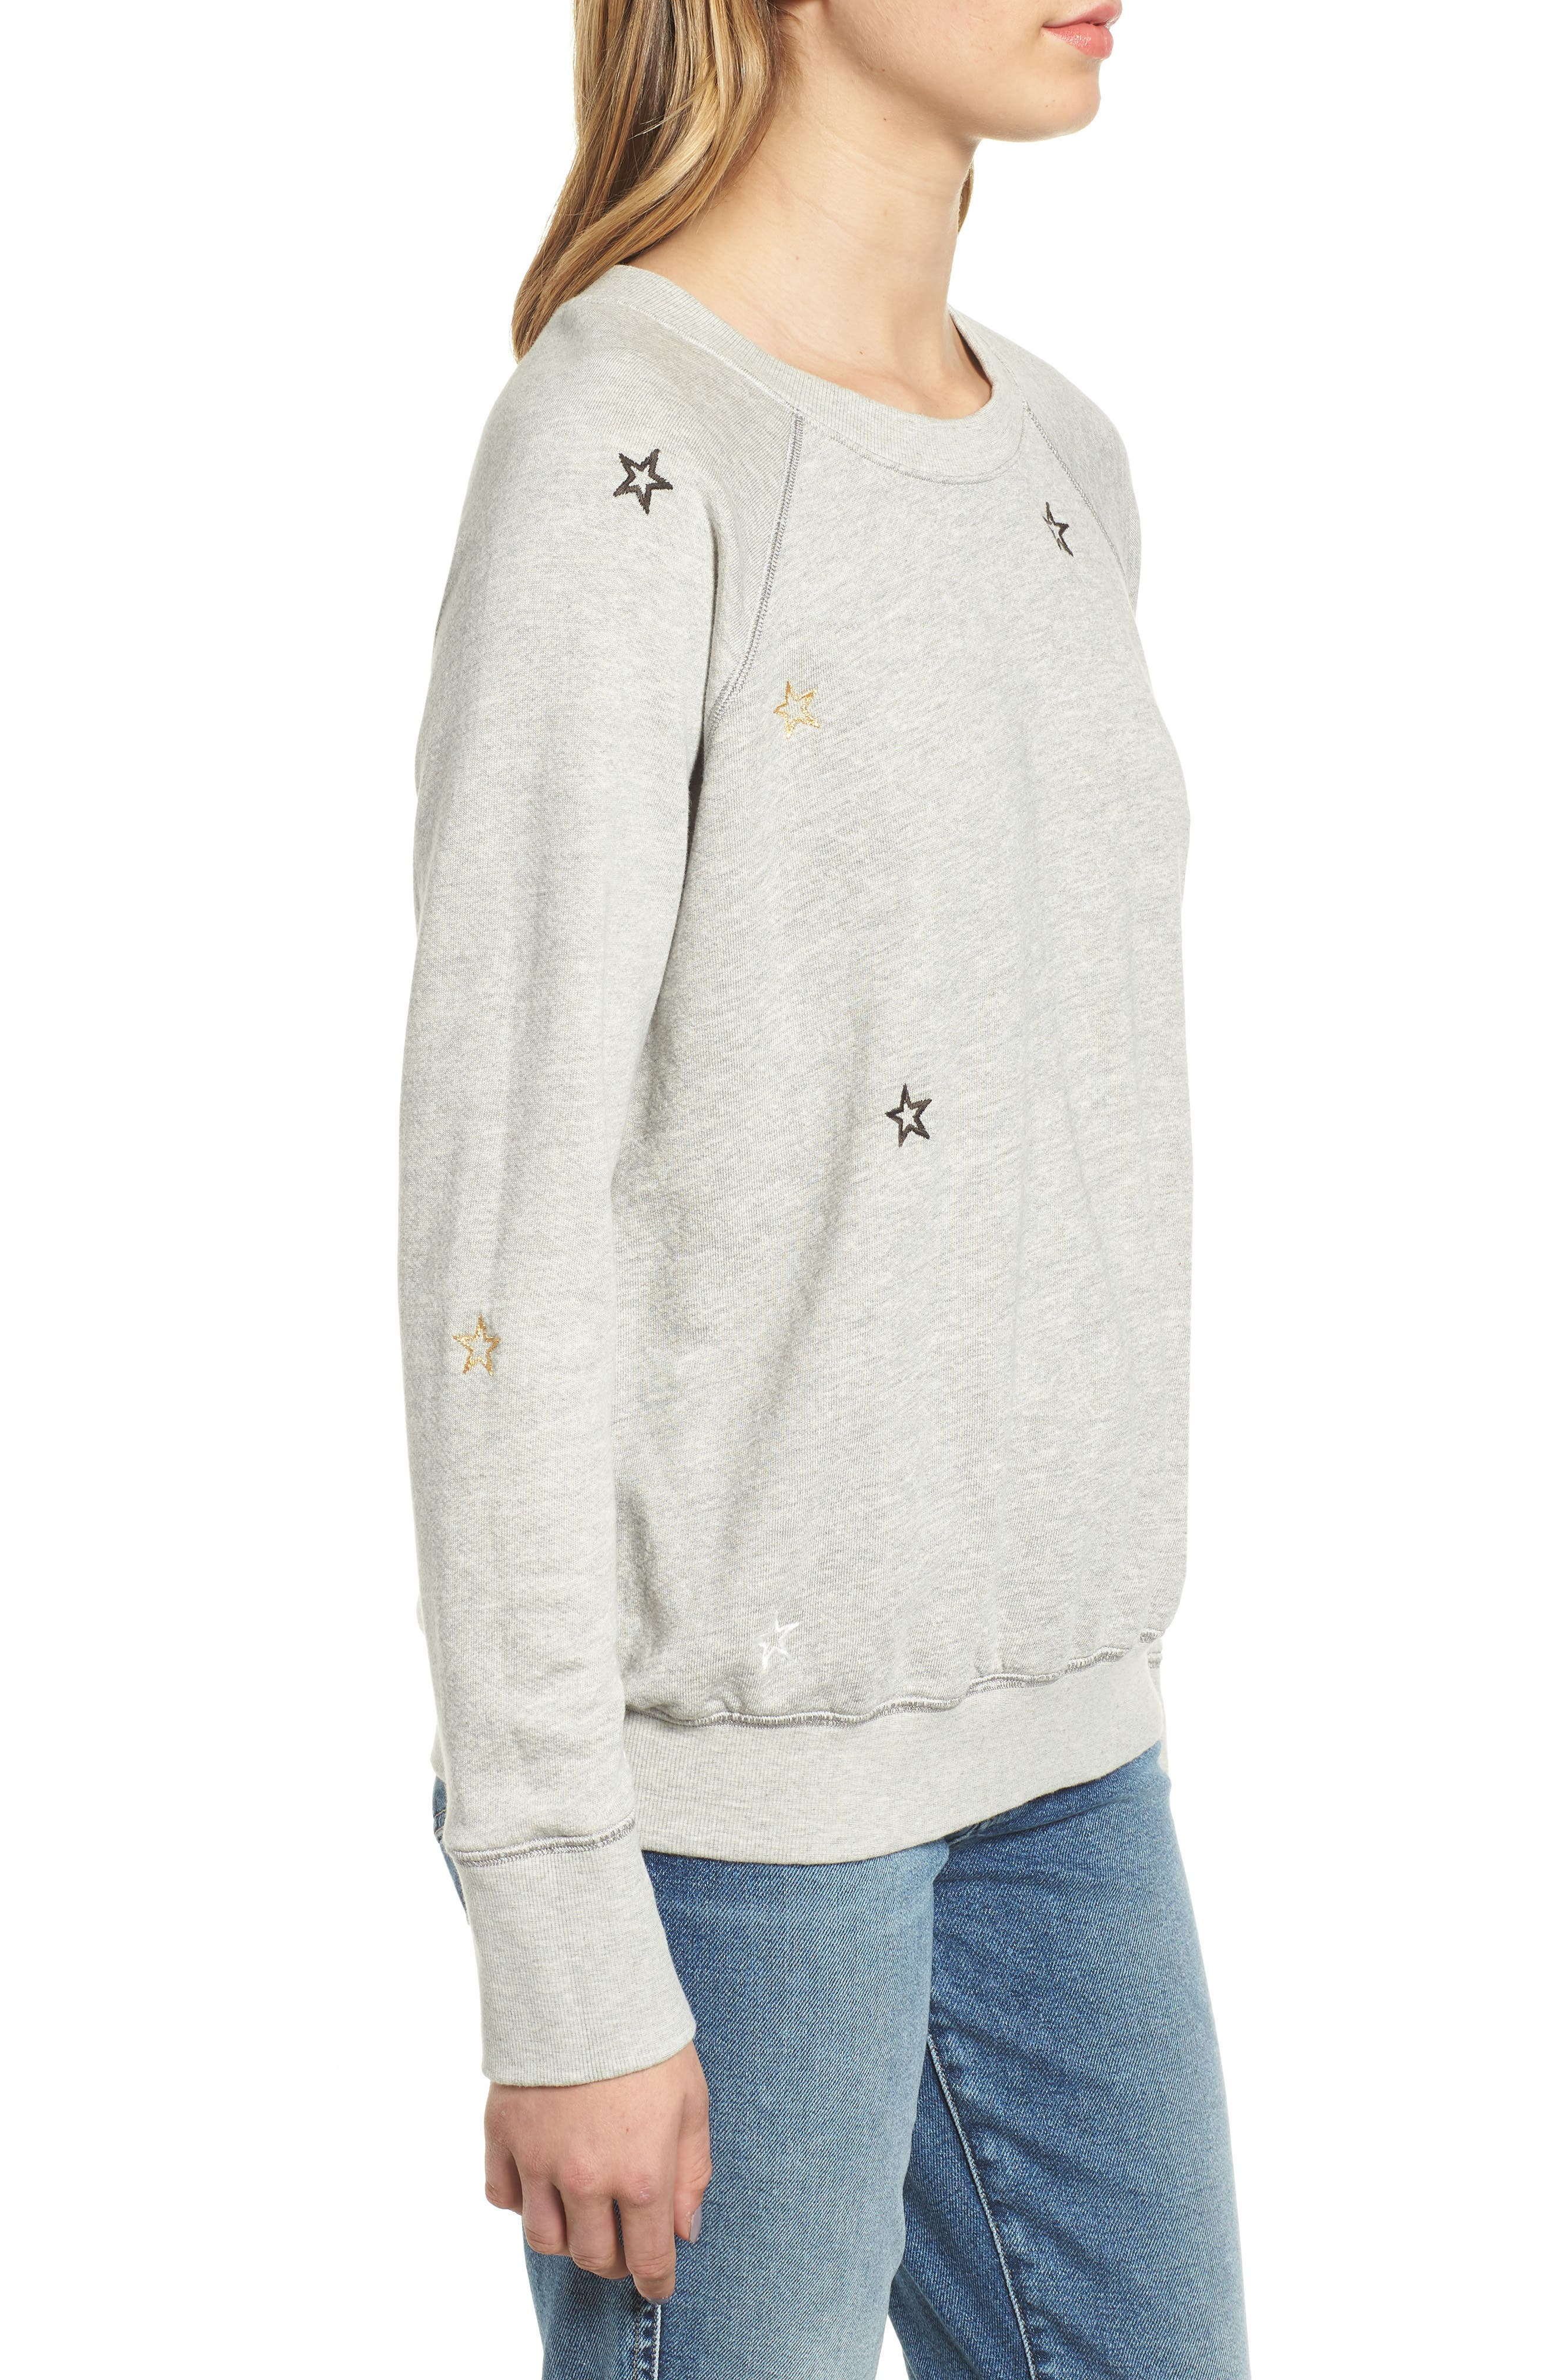 Star Embroidered Sweatshirt,                             Alternate thumbnail 3, color,                             HEATHER GREY